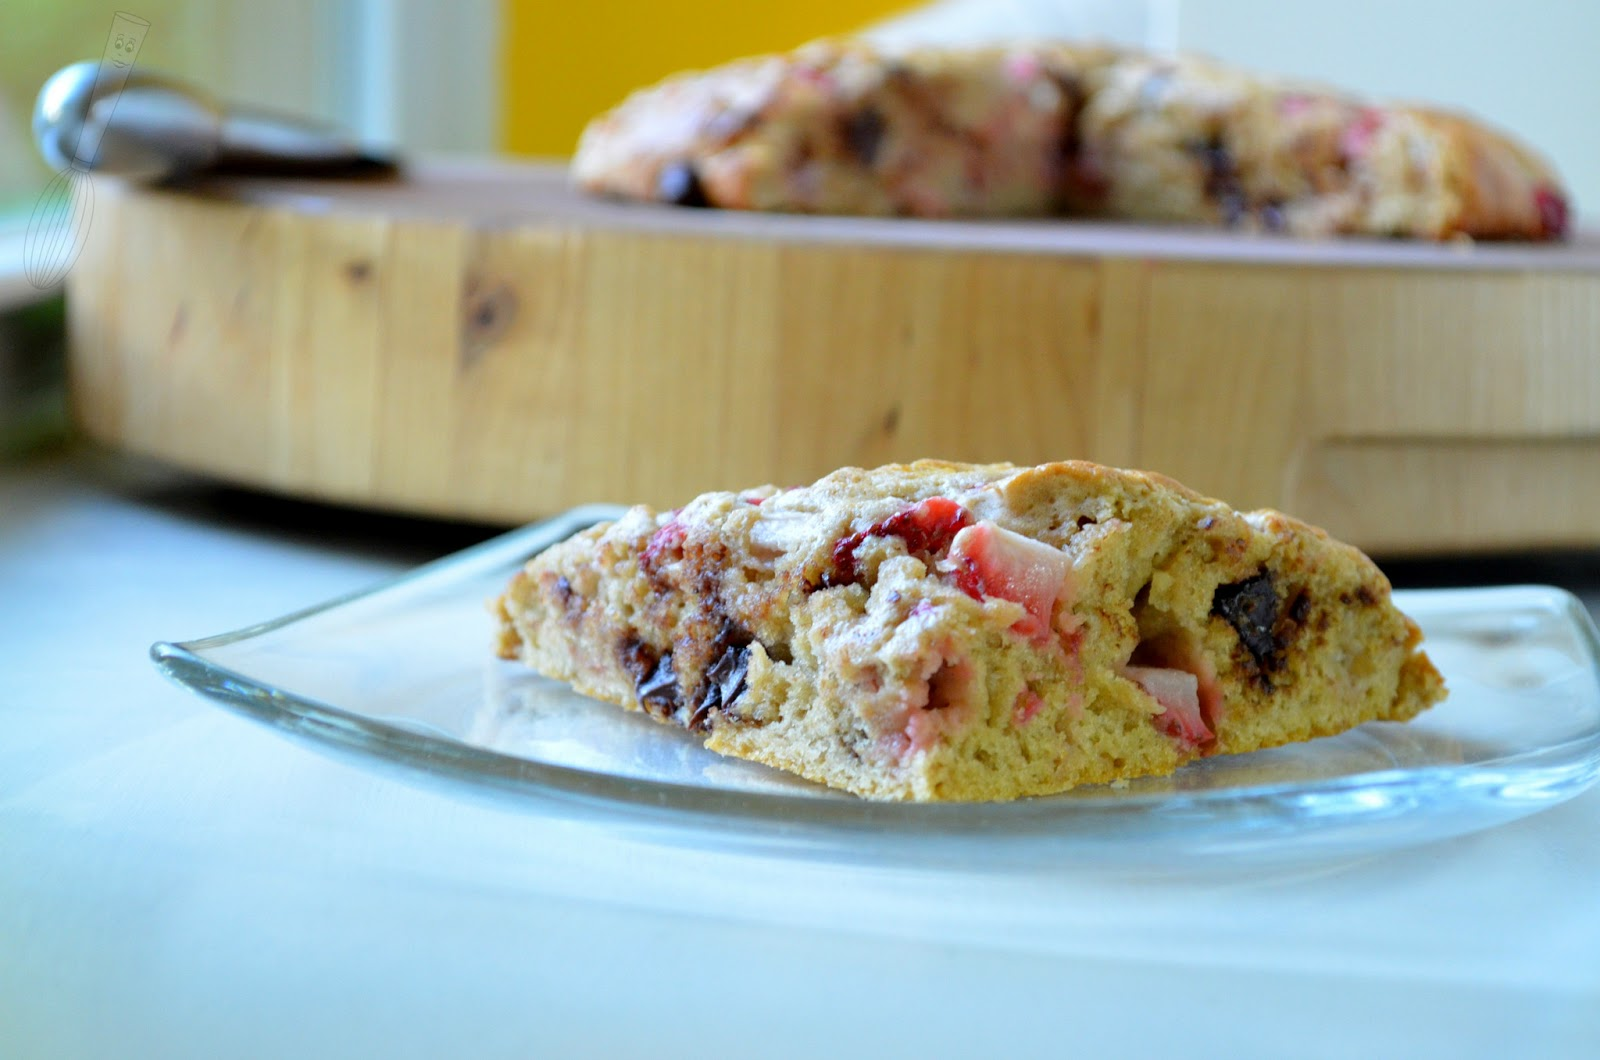 Strawberry & Chocolate Chip Scones | Searching for Dessert